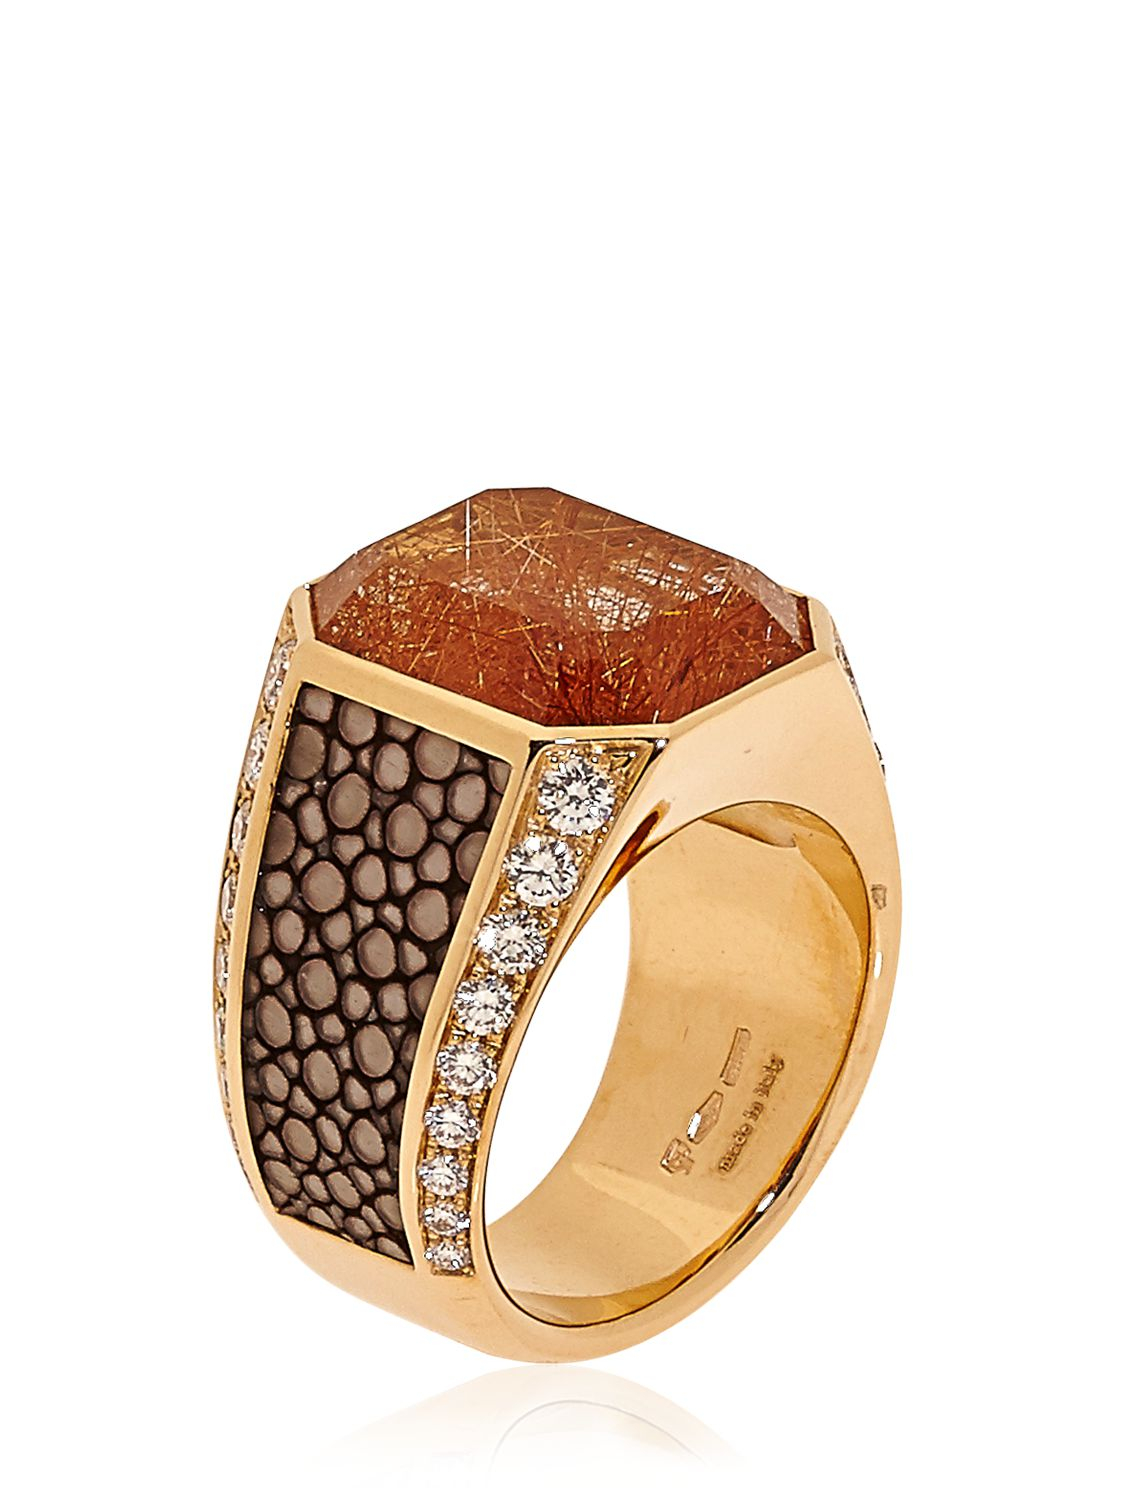 ferragamo galuchat jewellery collection ring in